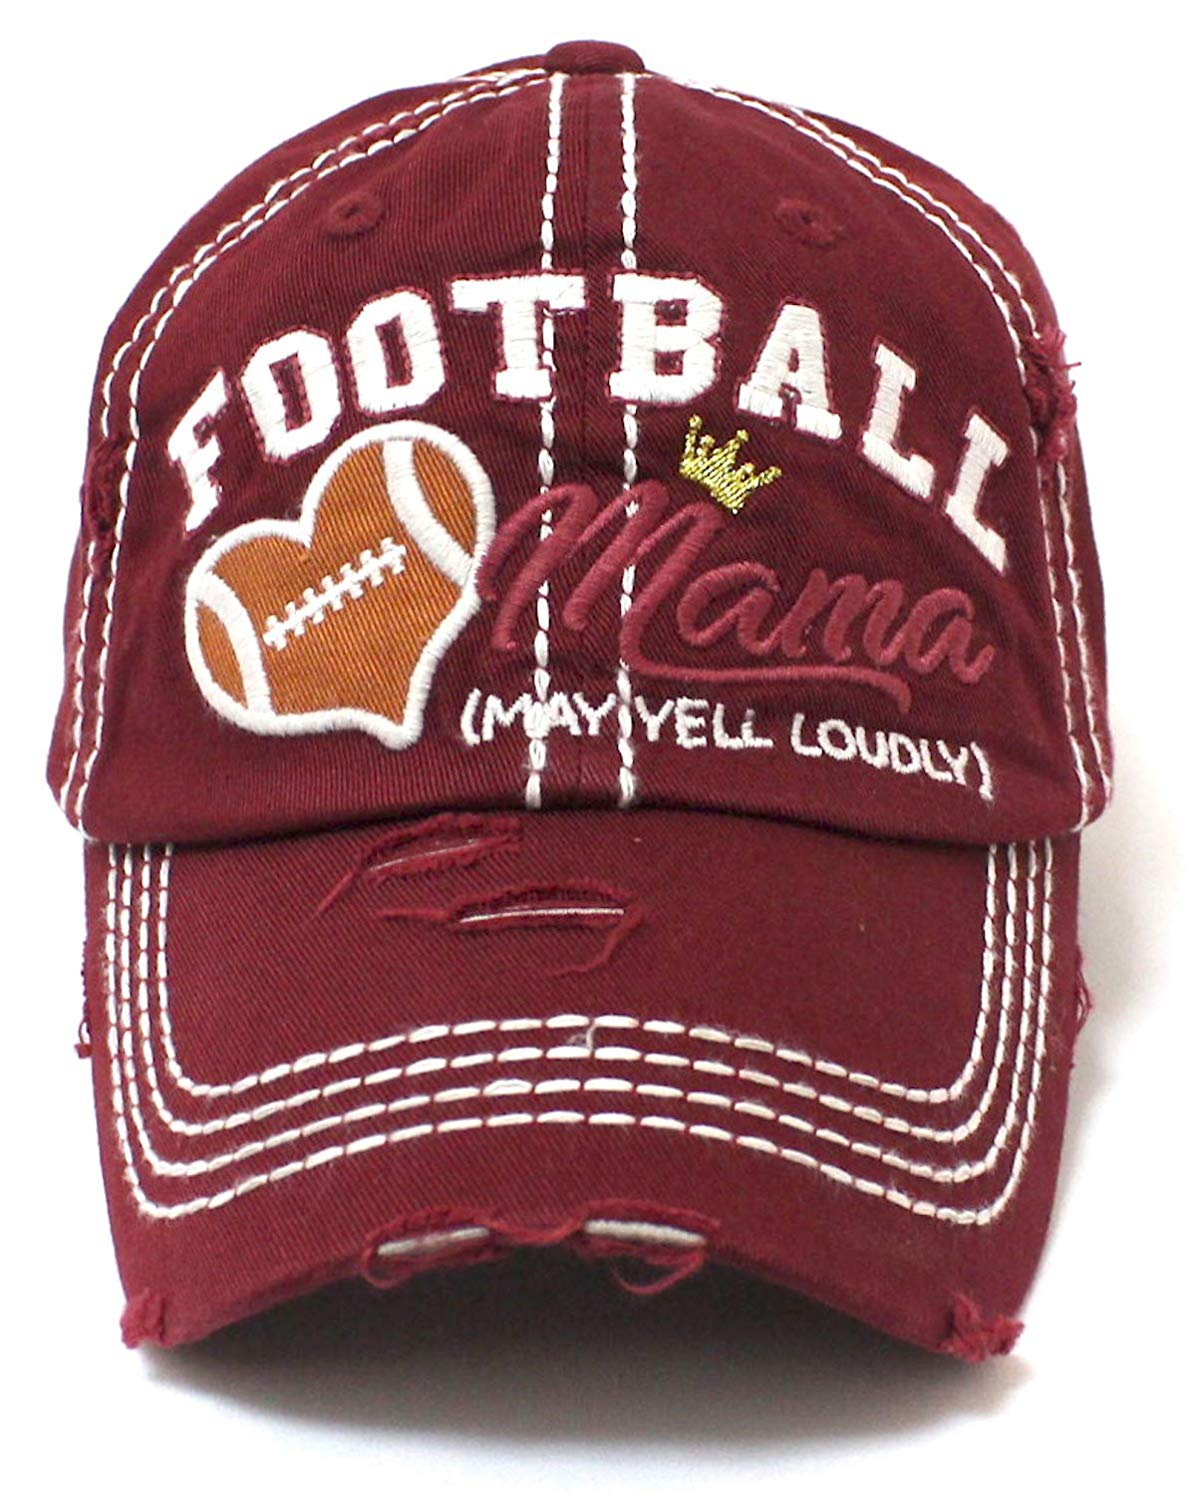 CAPS 'N VINTAGE Burgundy Football Mama Cheer Queen Hat - Caps 'N Vintage